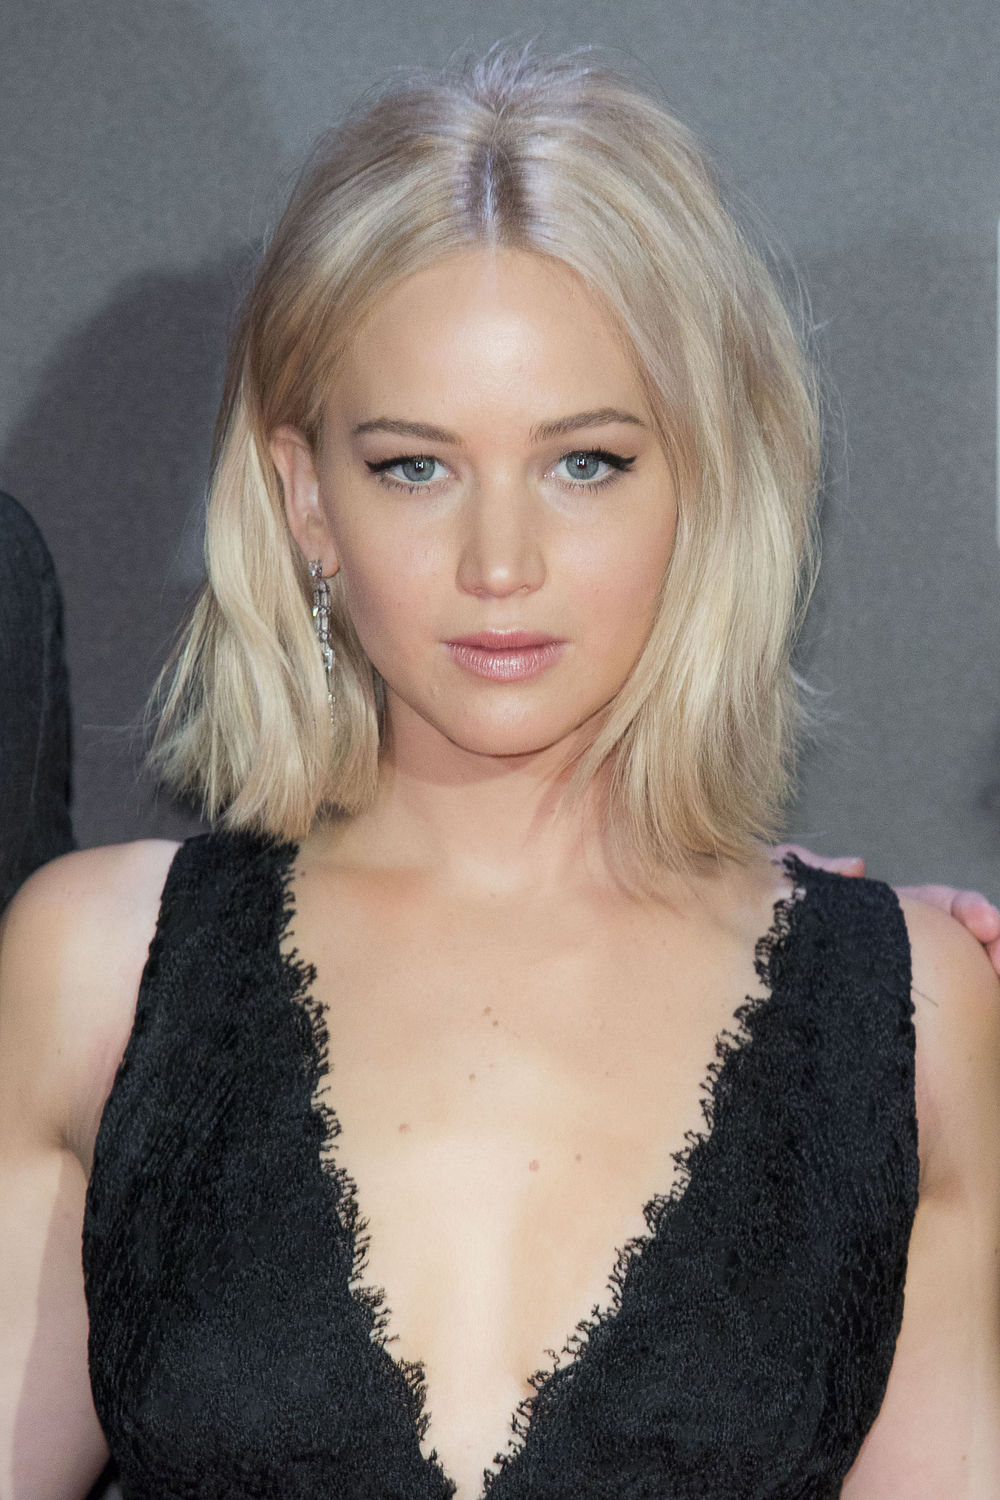 bob hairstyles: the best celebrity bobs to inspire your hairdo